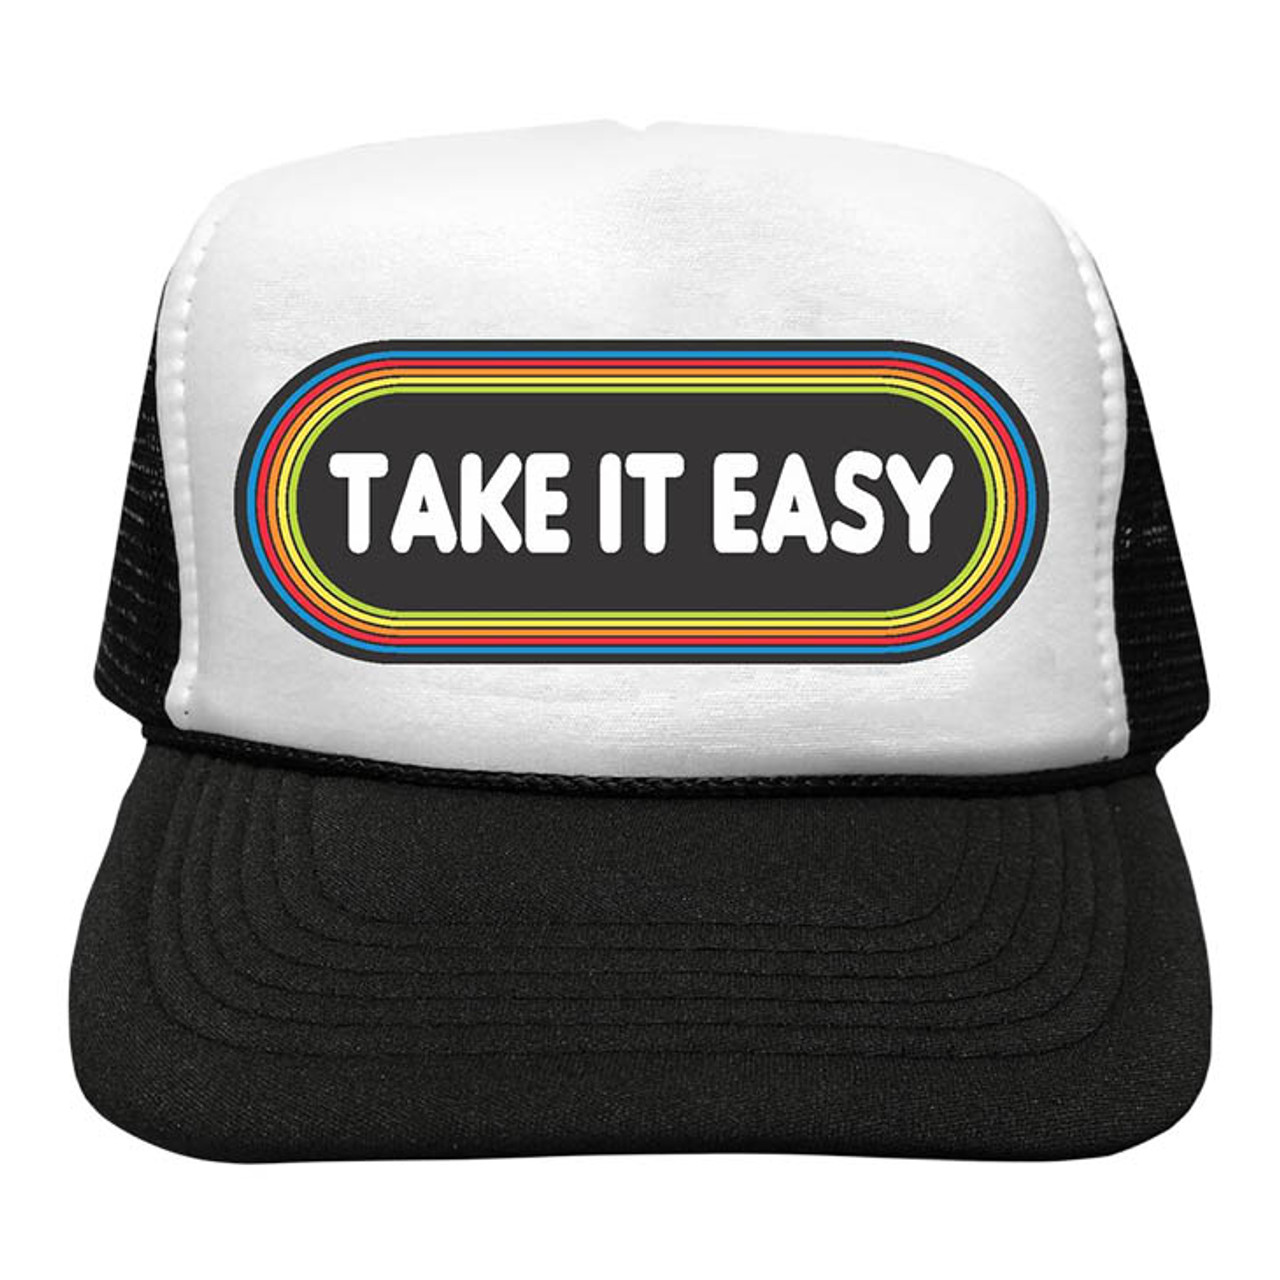 83c0be54e44 Take It Easy Mesh Trucker Hat - Spearmint Ventures